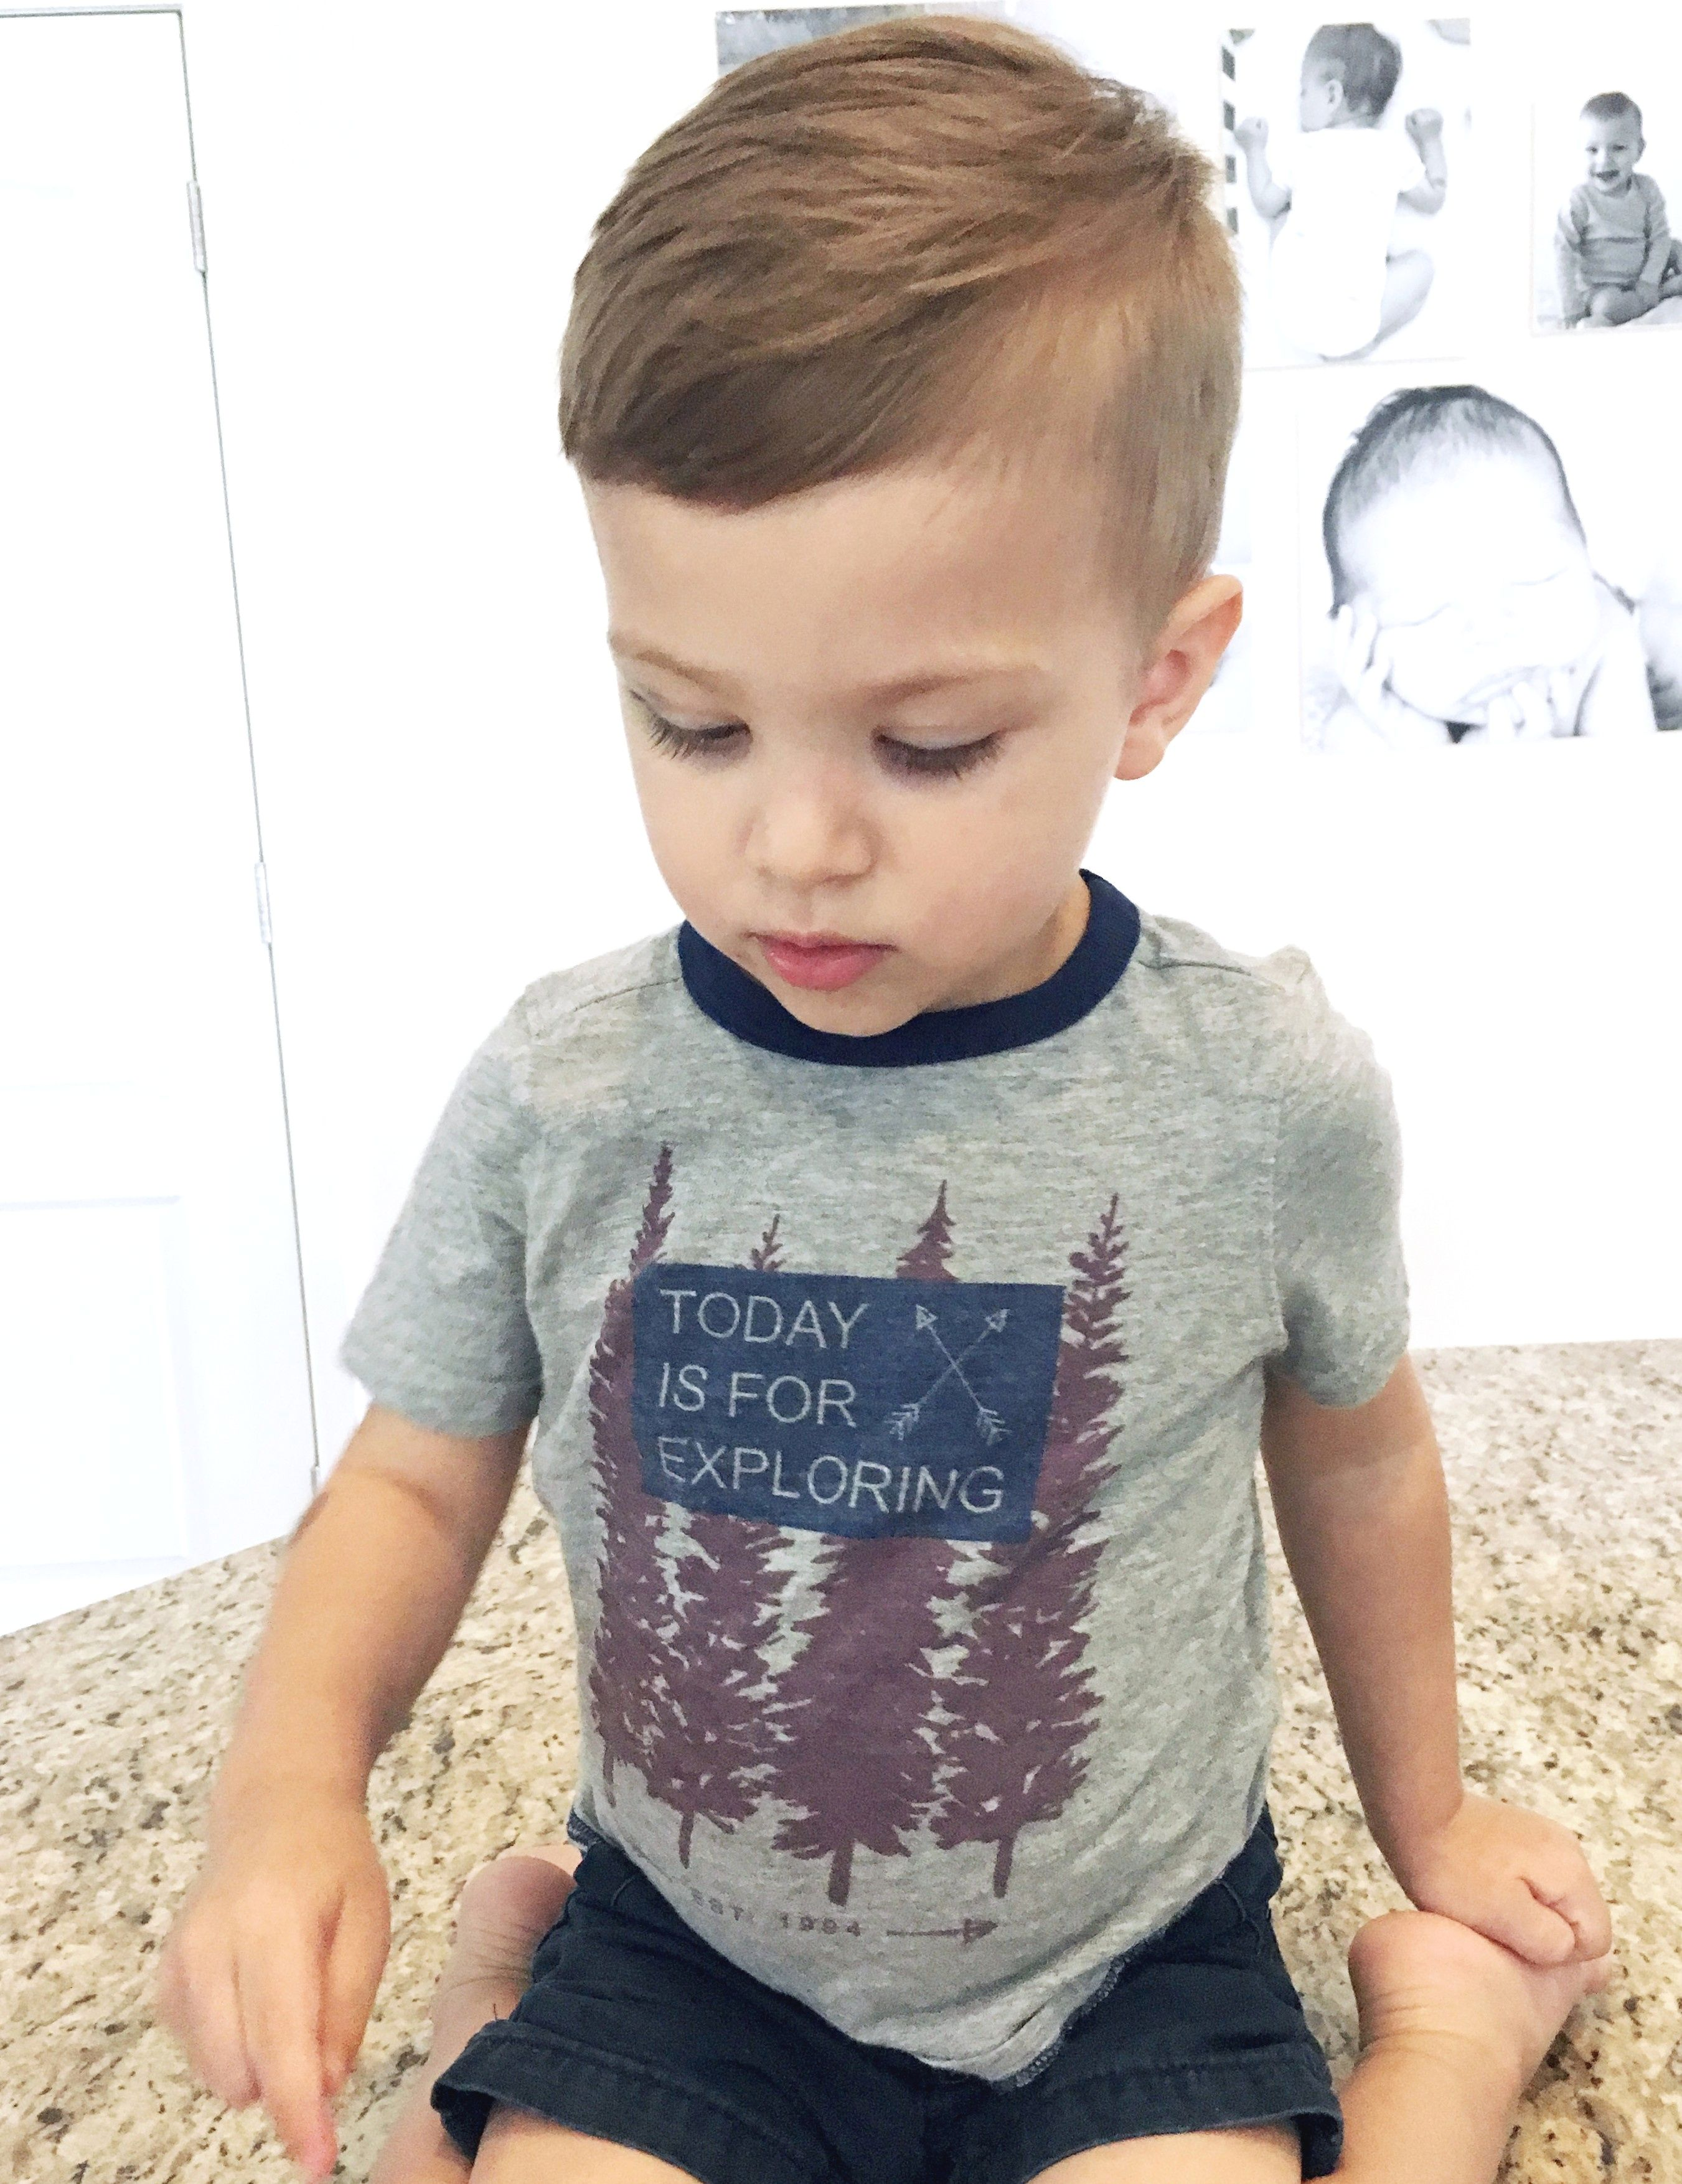 Cool Baby Boy Haircuts New Haircuts For 2 Year Old Boy 2017 Creative